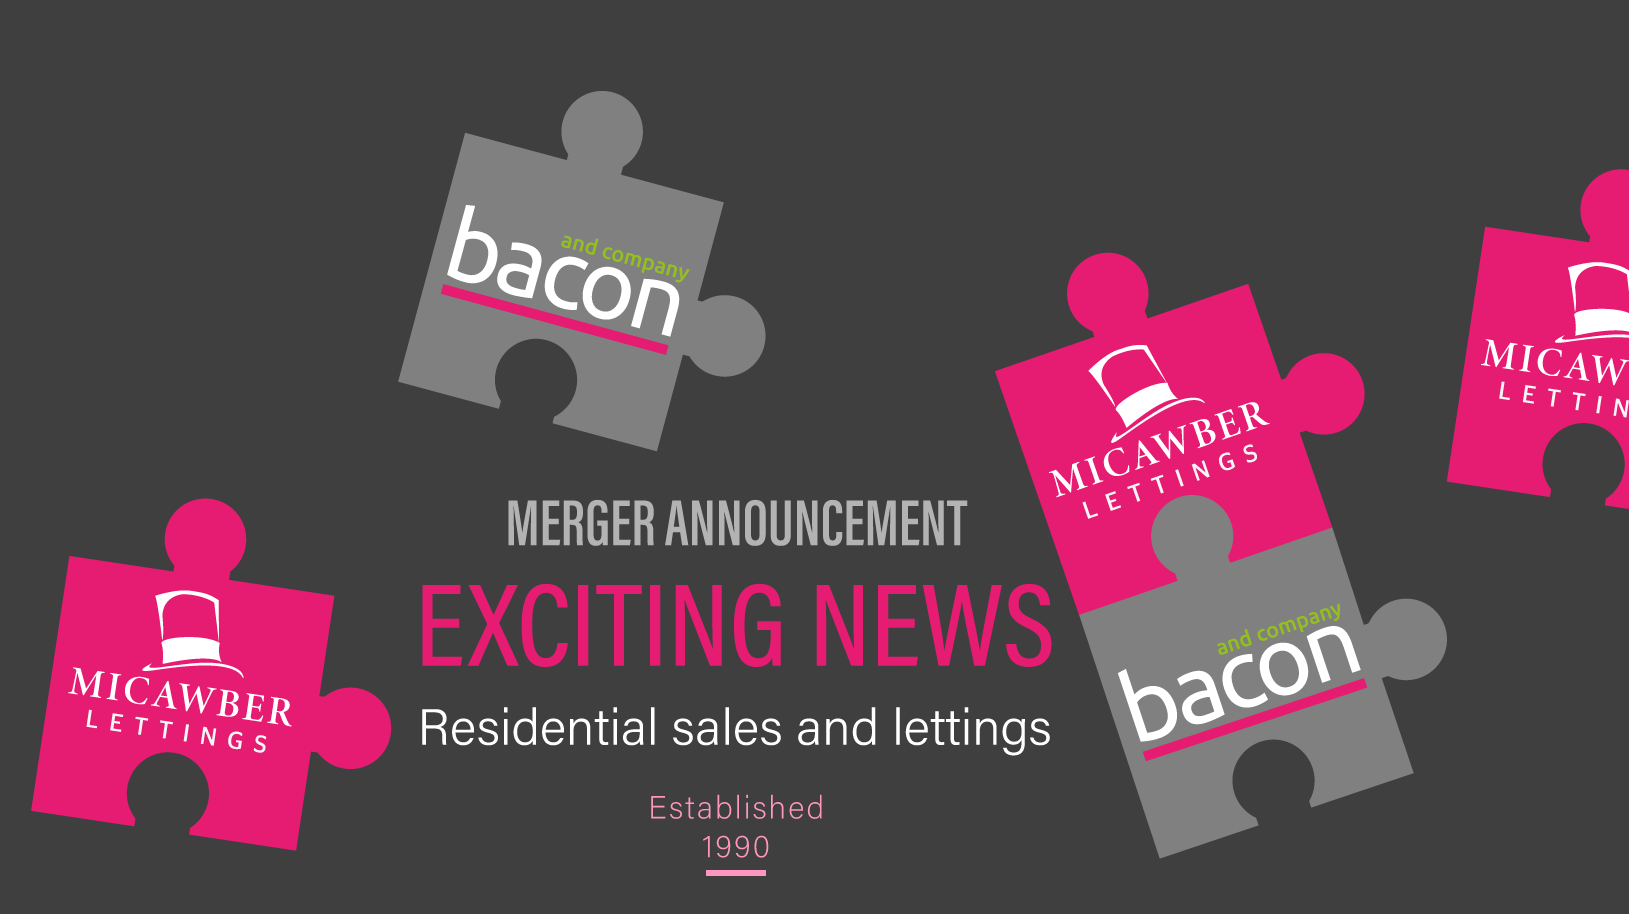 Bacon Lettings